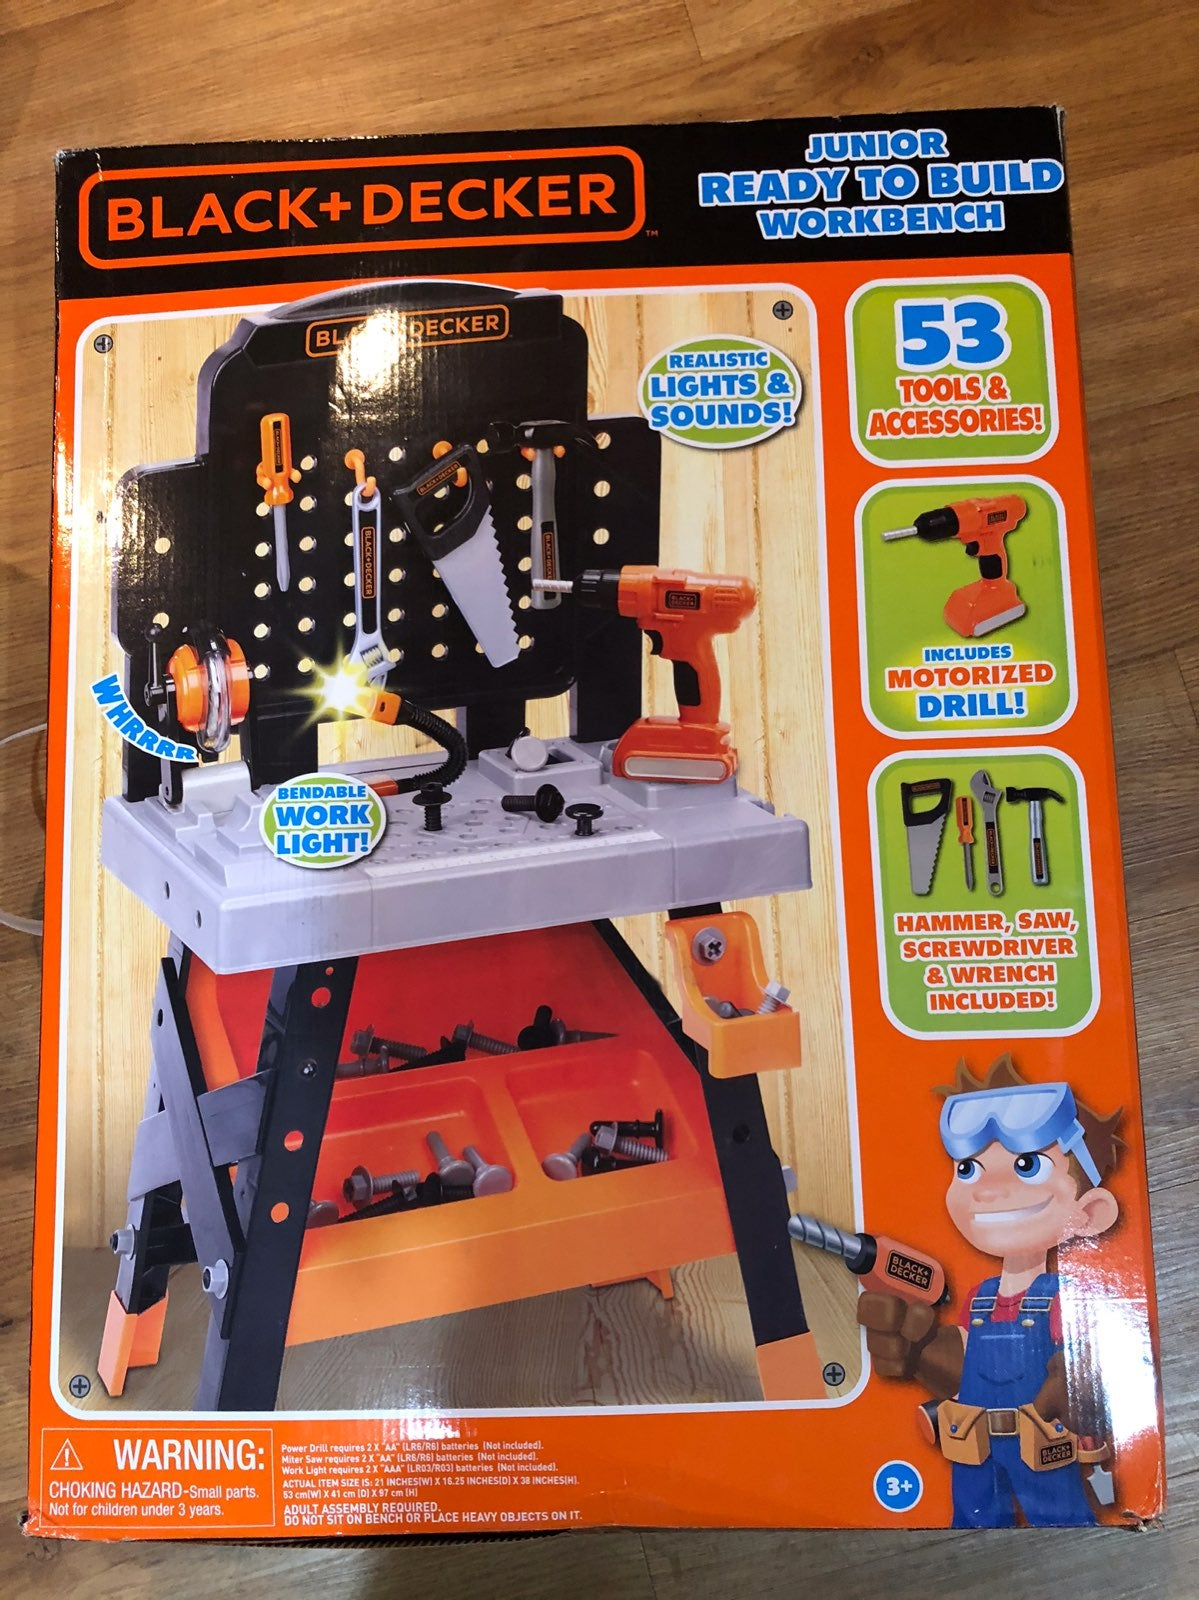 Black and Decker junior Ready to Build S